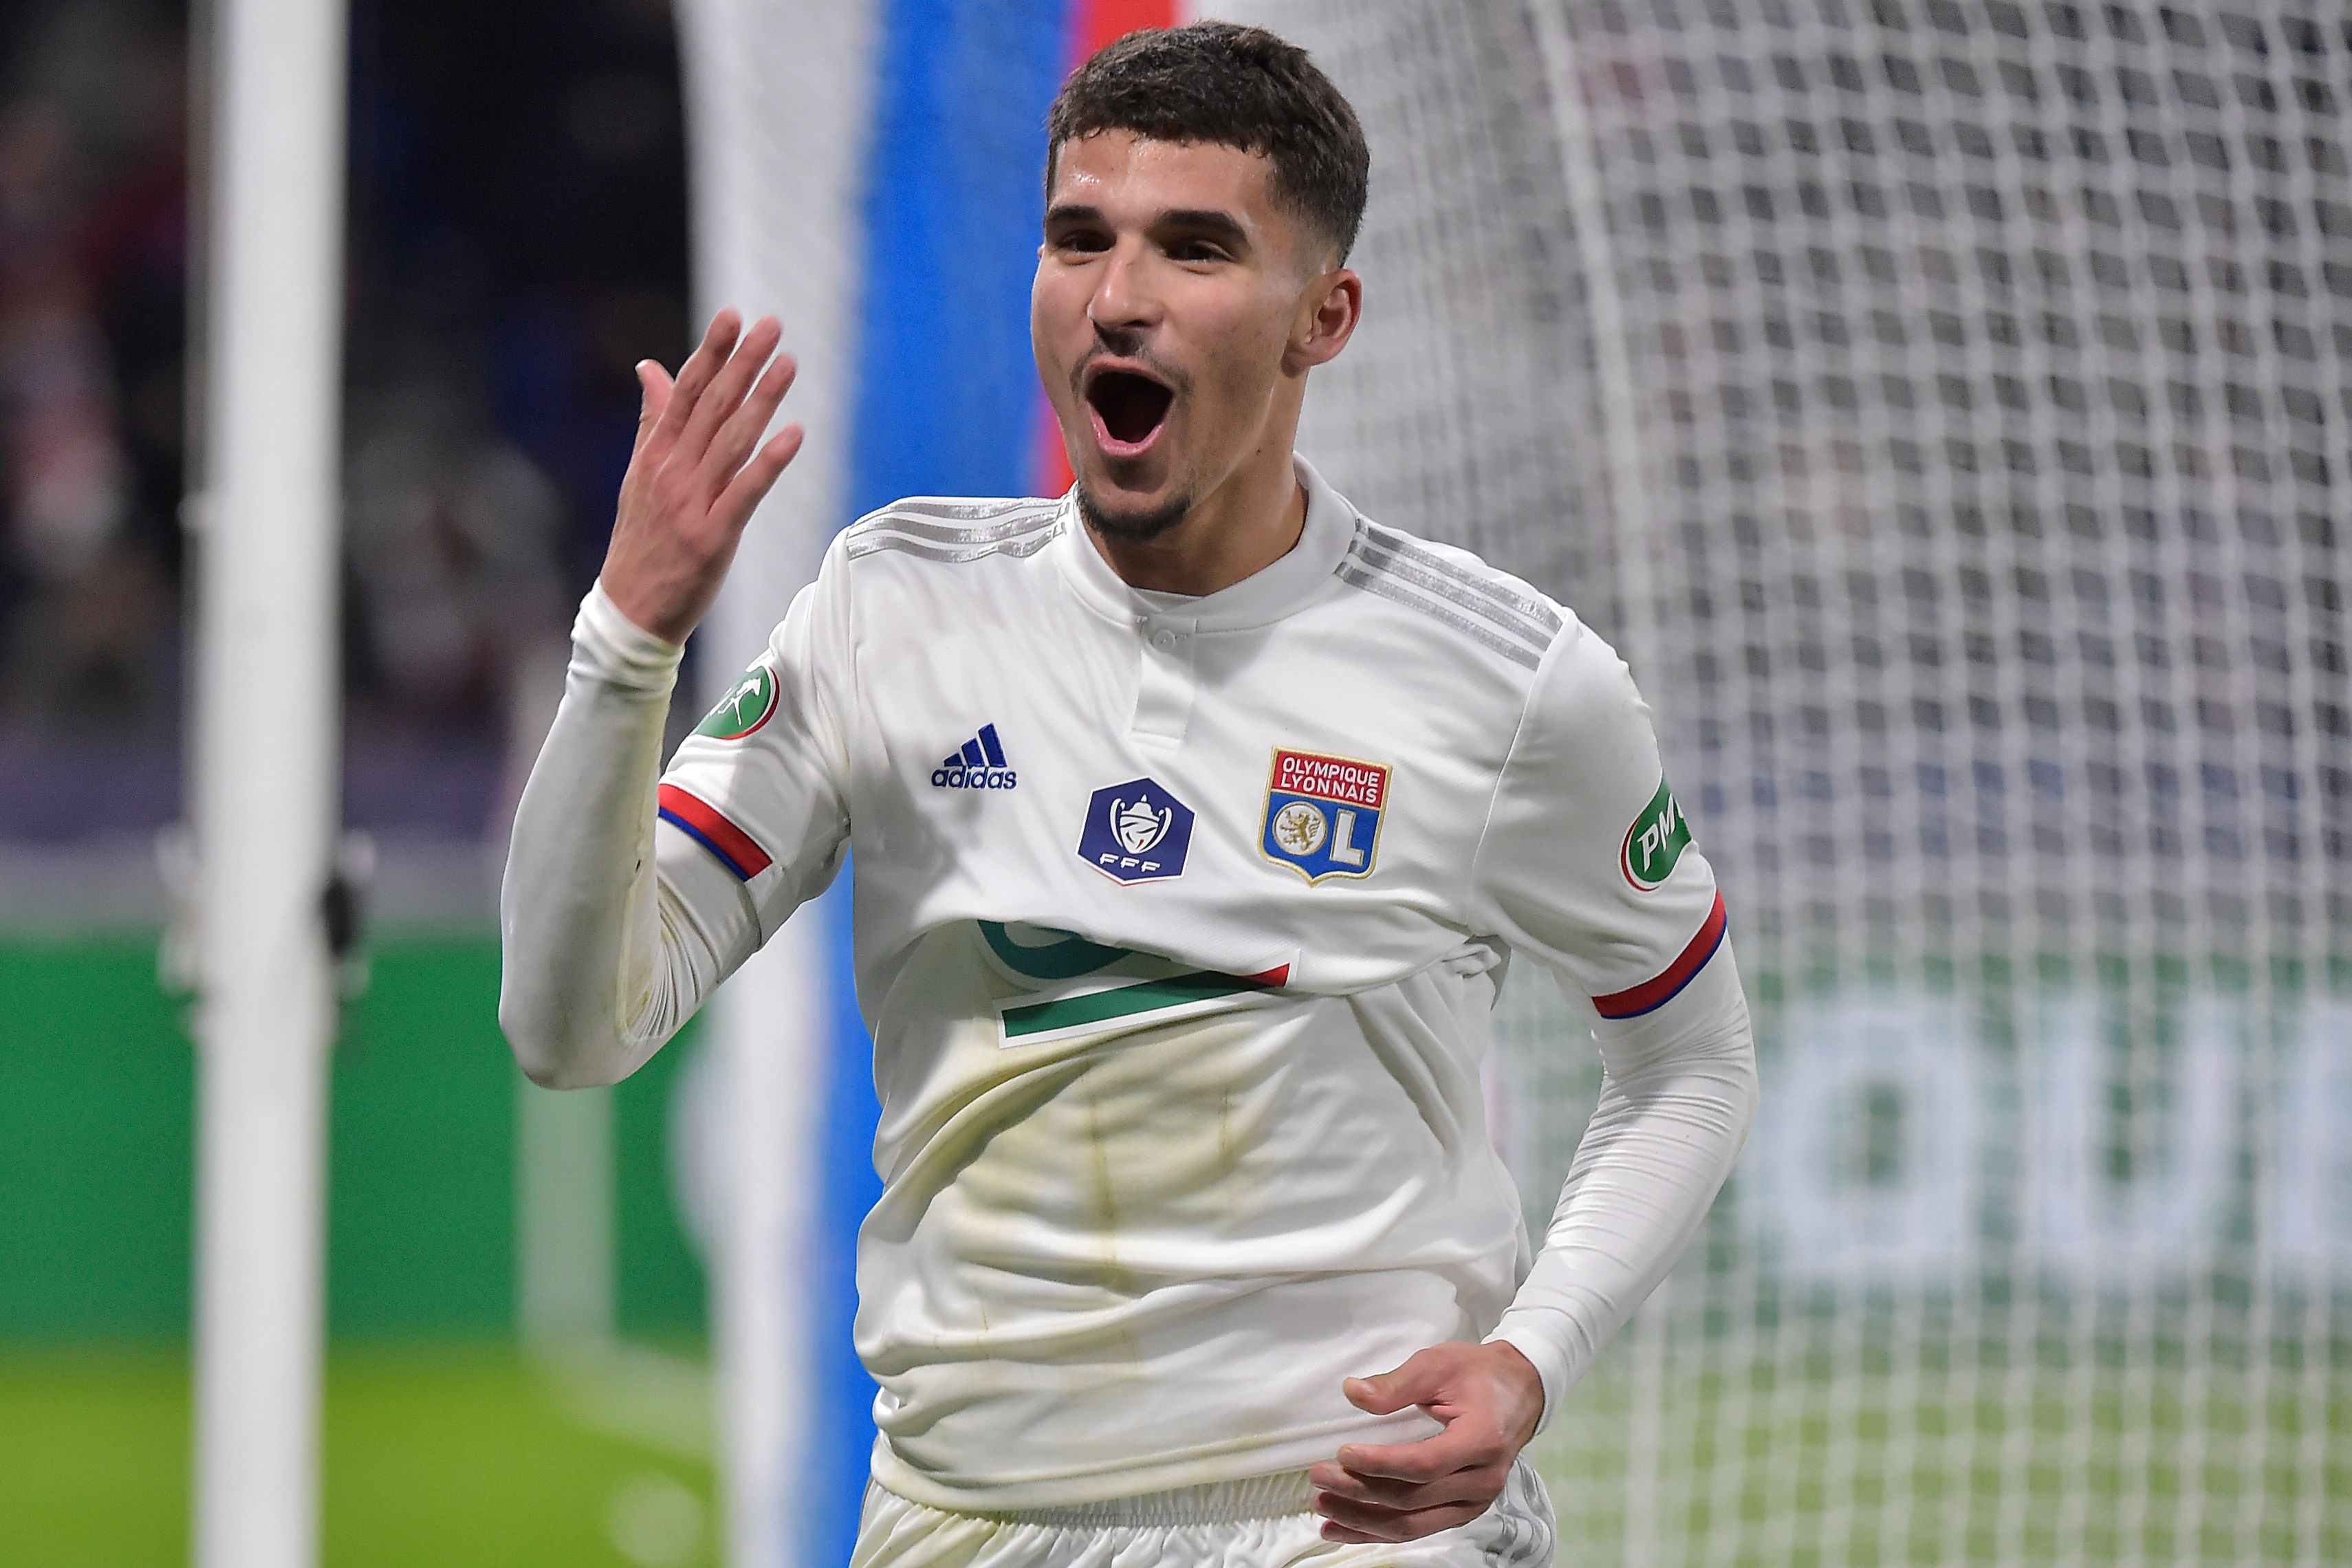 Arsenal have made a move to sign Houssem Aouar - A prime target.